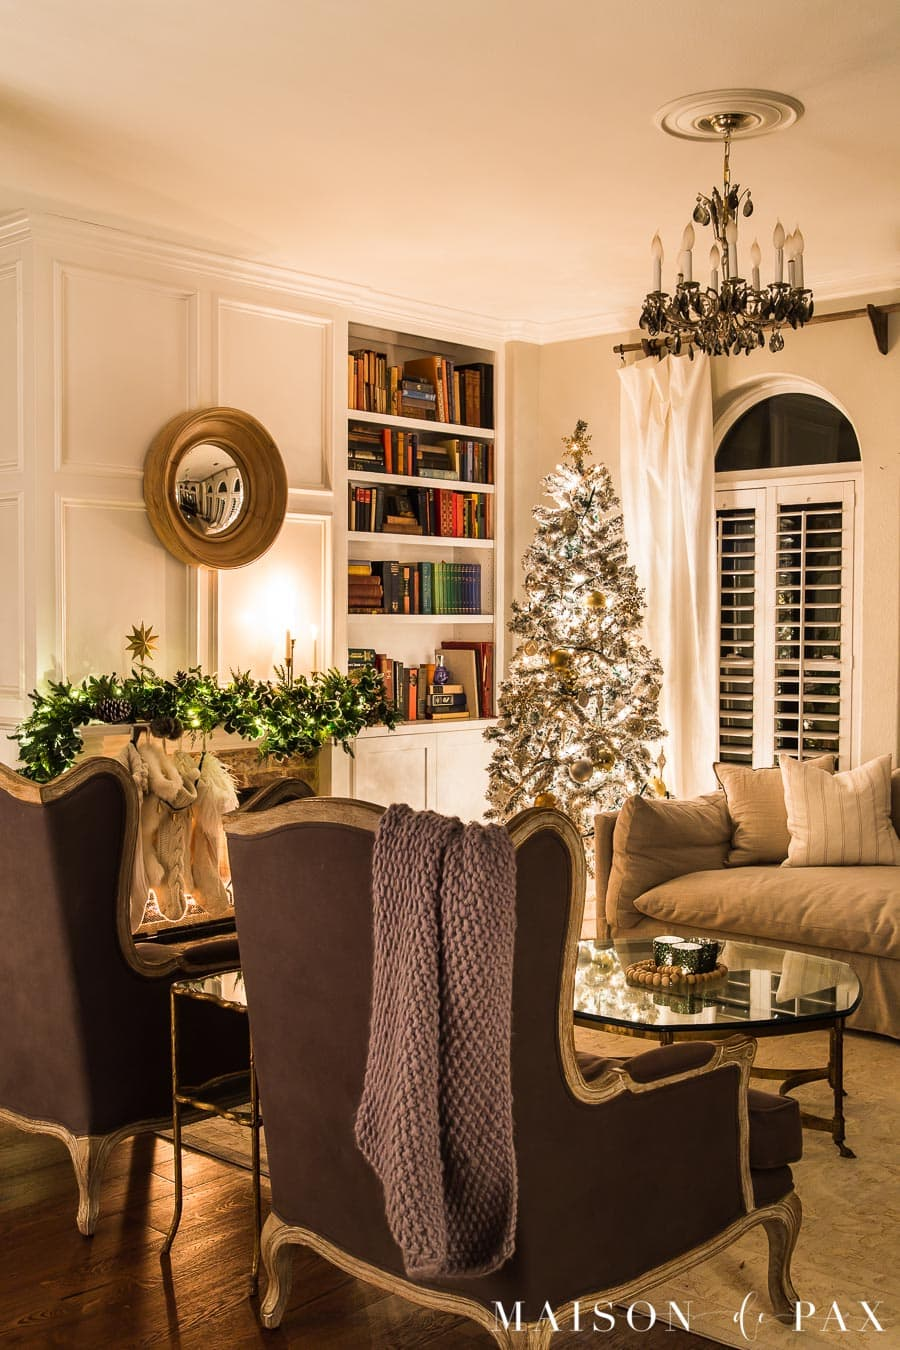 Living room lit up at night by Christmas tree and string lights | Maison de Pax